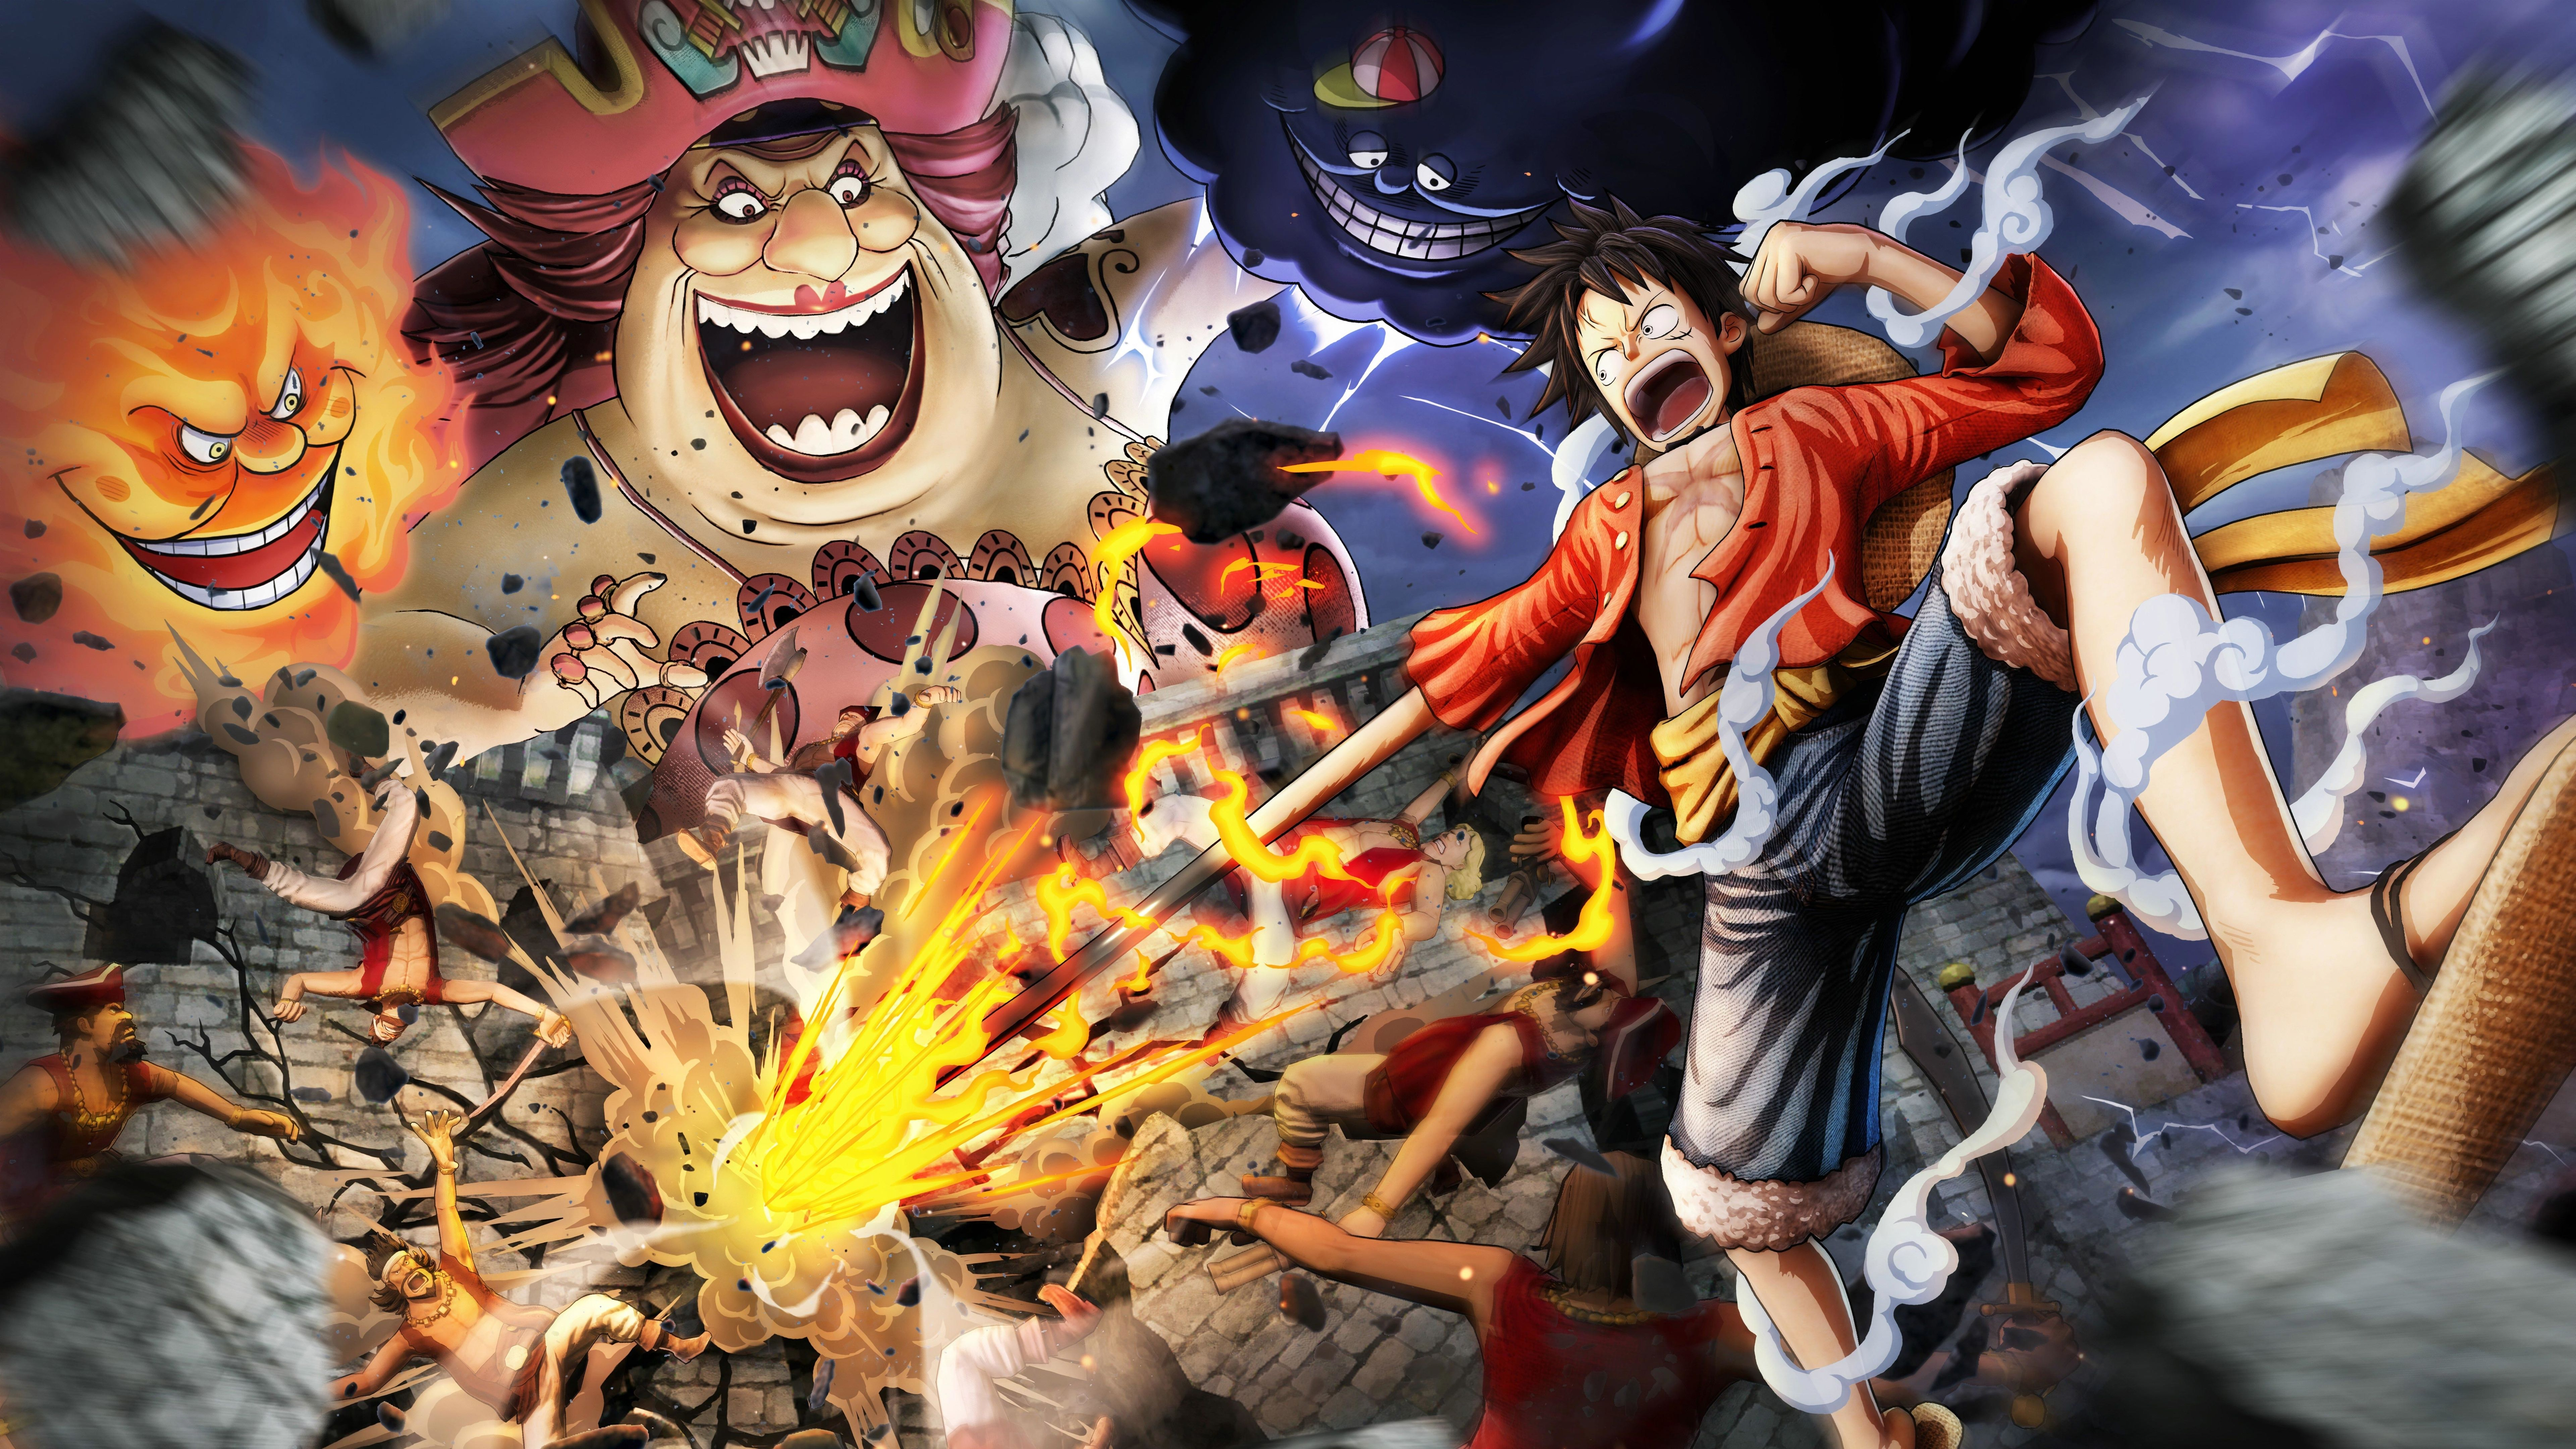 8k One Piece Wallpapers Top Free 8k One Piece Backgrounds Wallpaperaccess